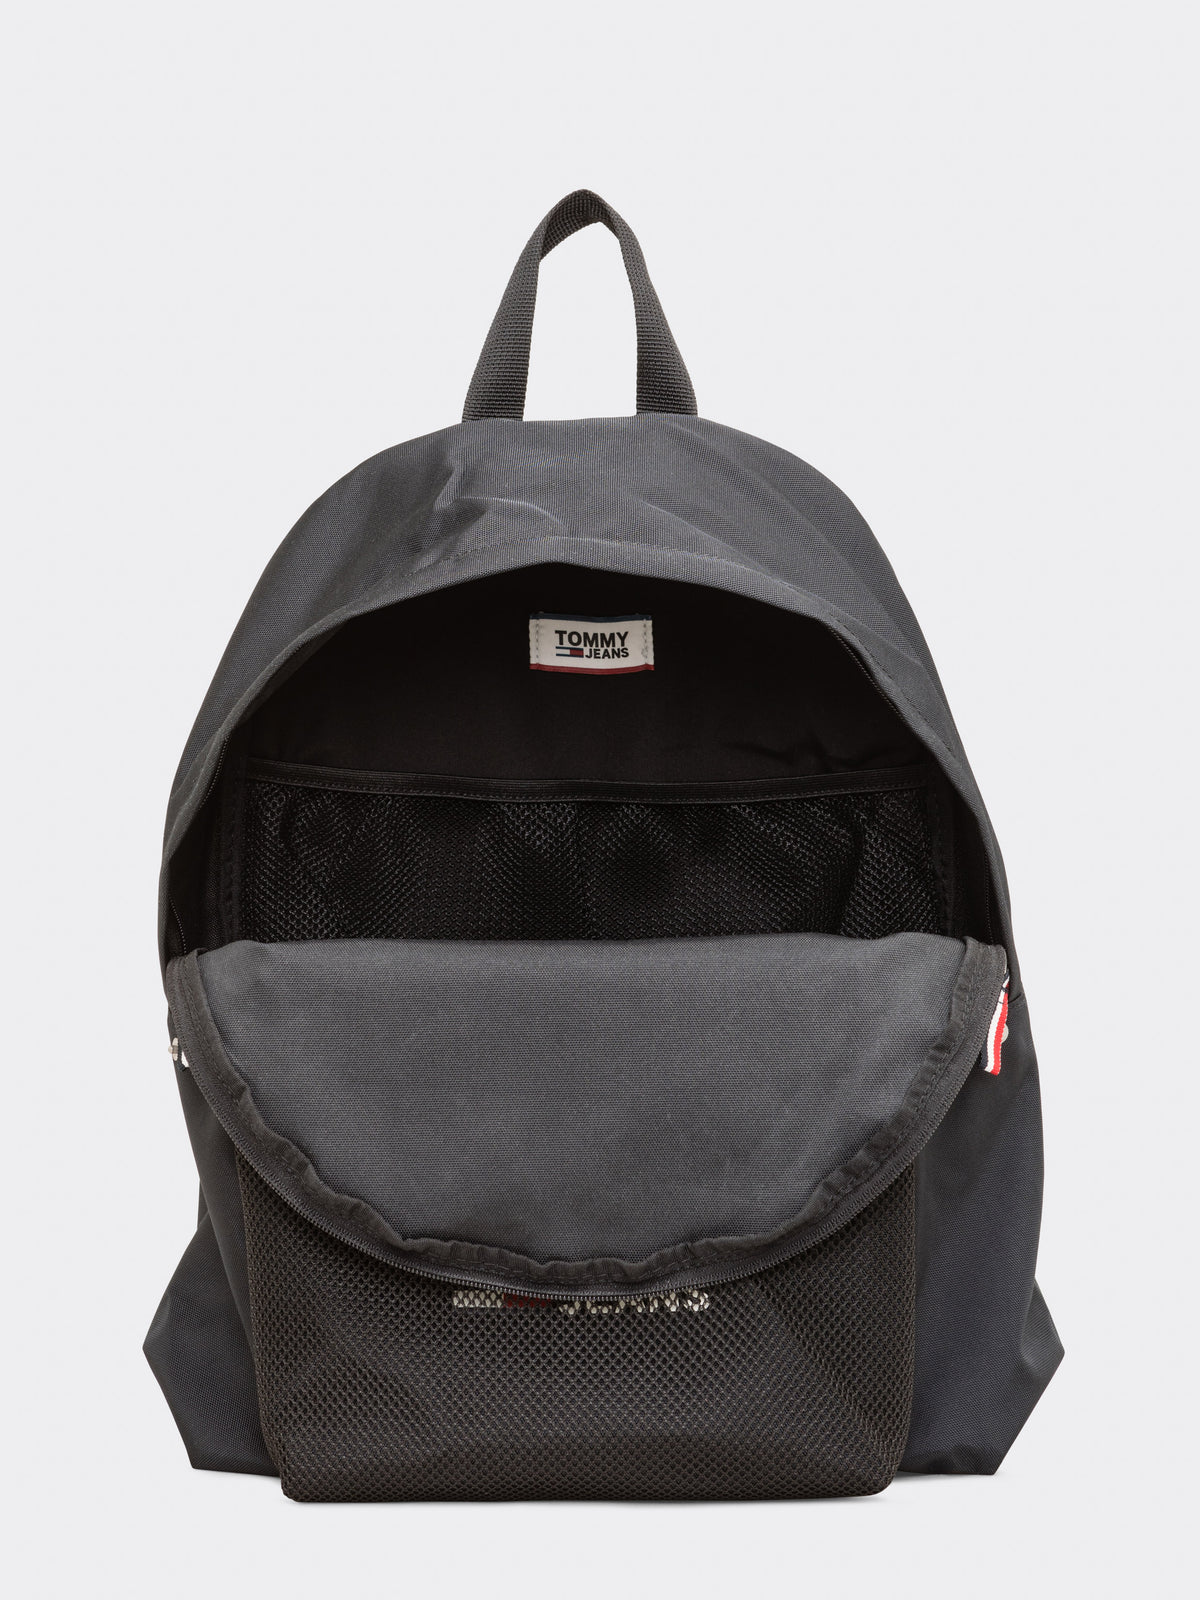 Cool City Backpack in Black